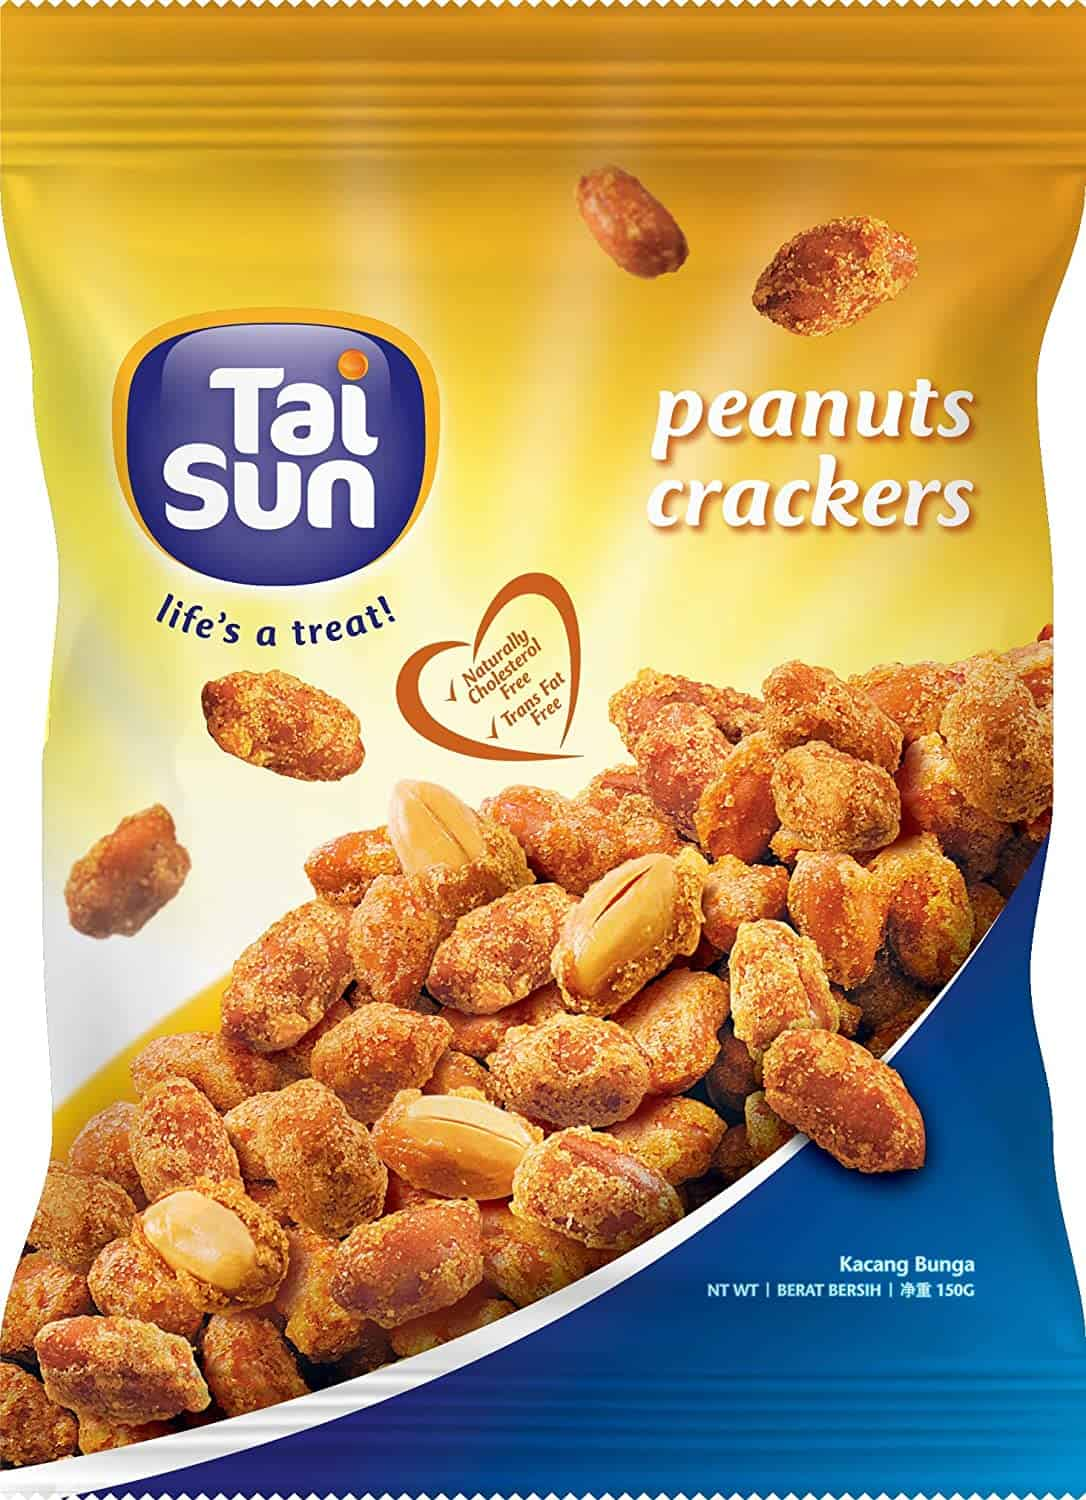 Tai Sun Peanut Cracker is the top 10 Best Childhood Snacks in Singapore, peanuts, cashews, pistachios, groundnuts and almonds, crunchy fried peanuts with spices